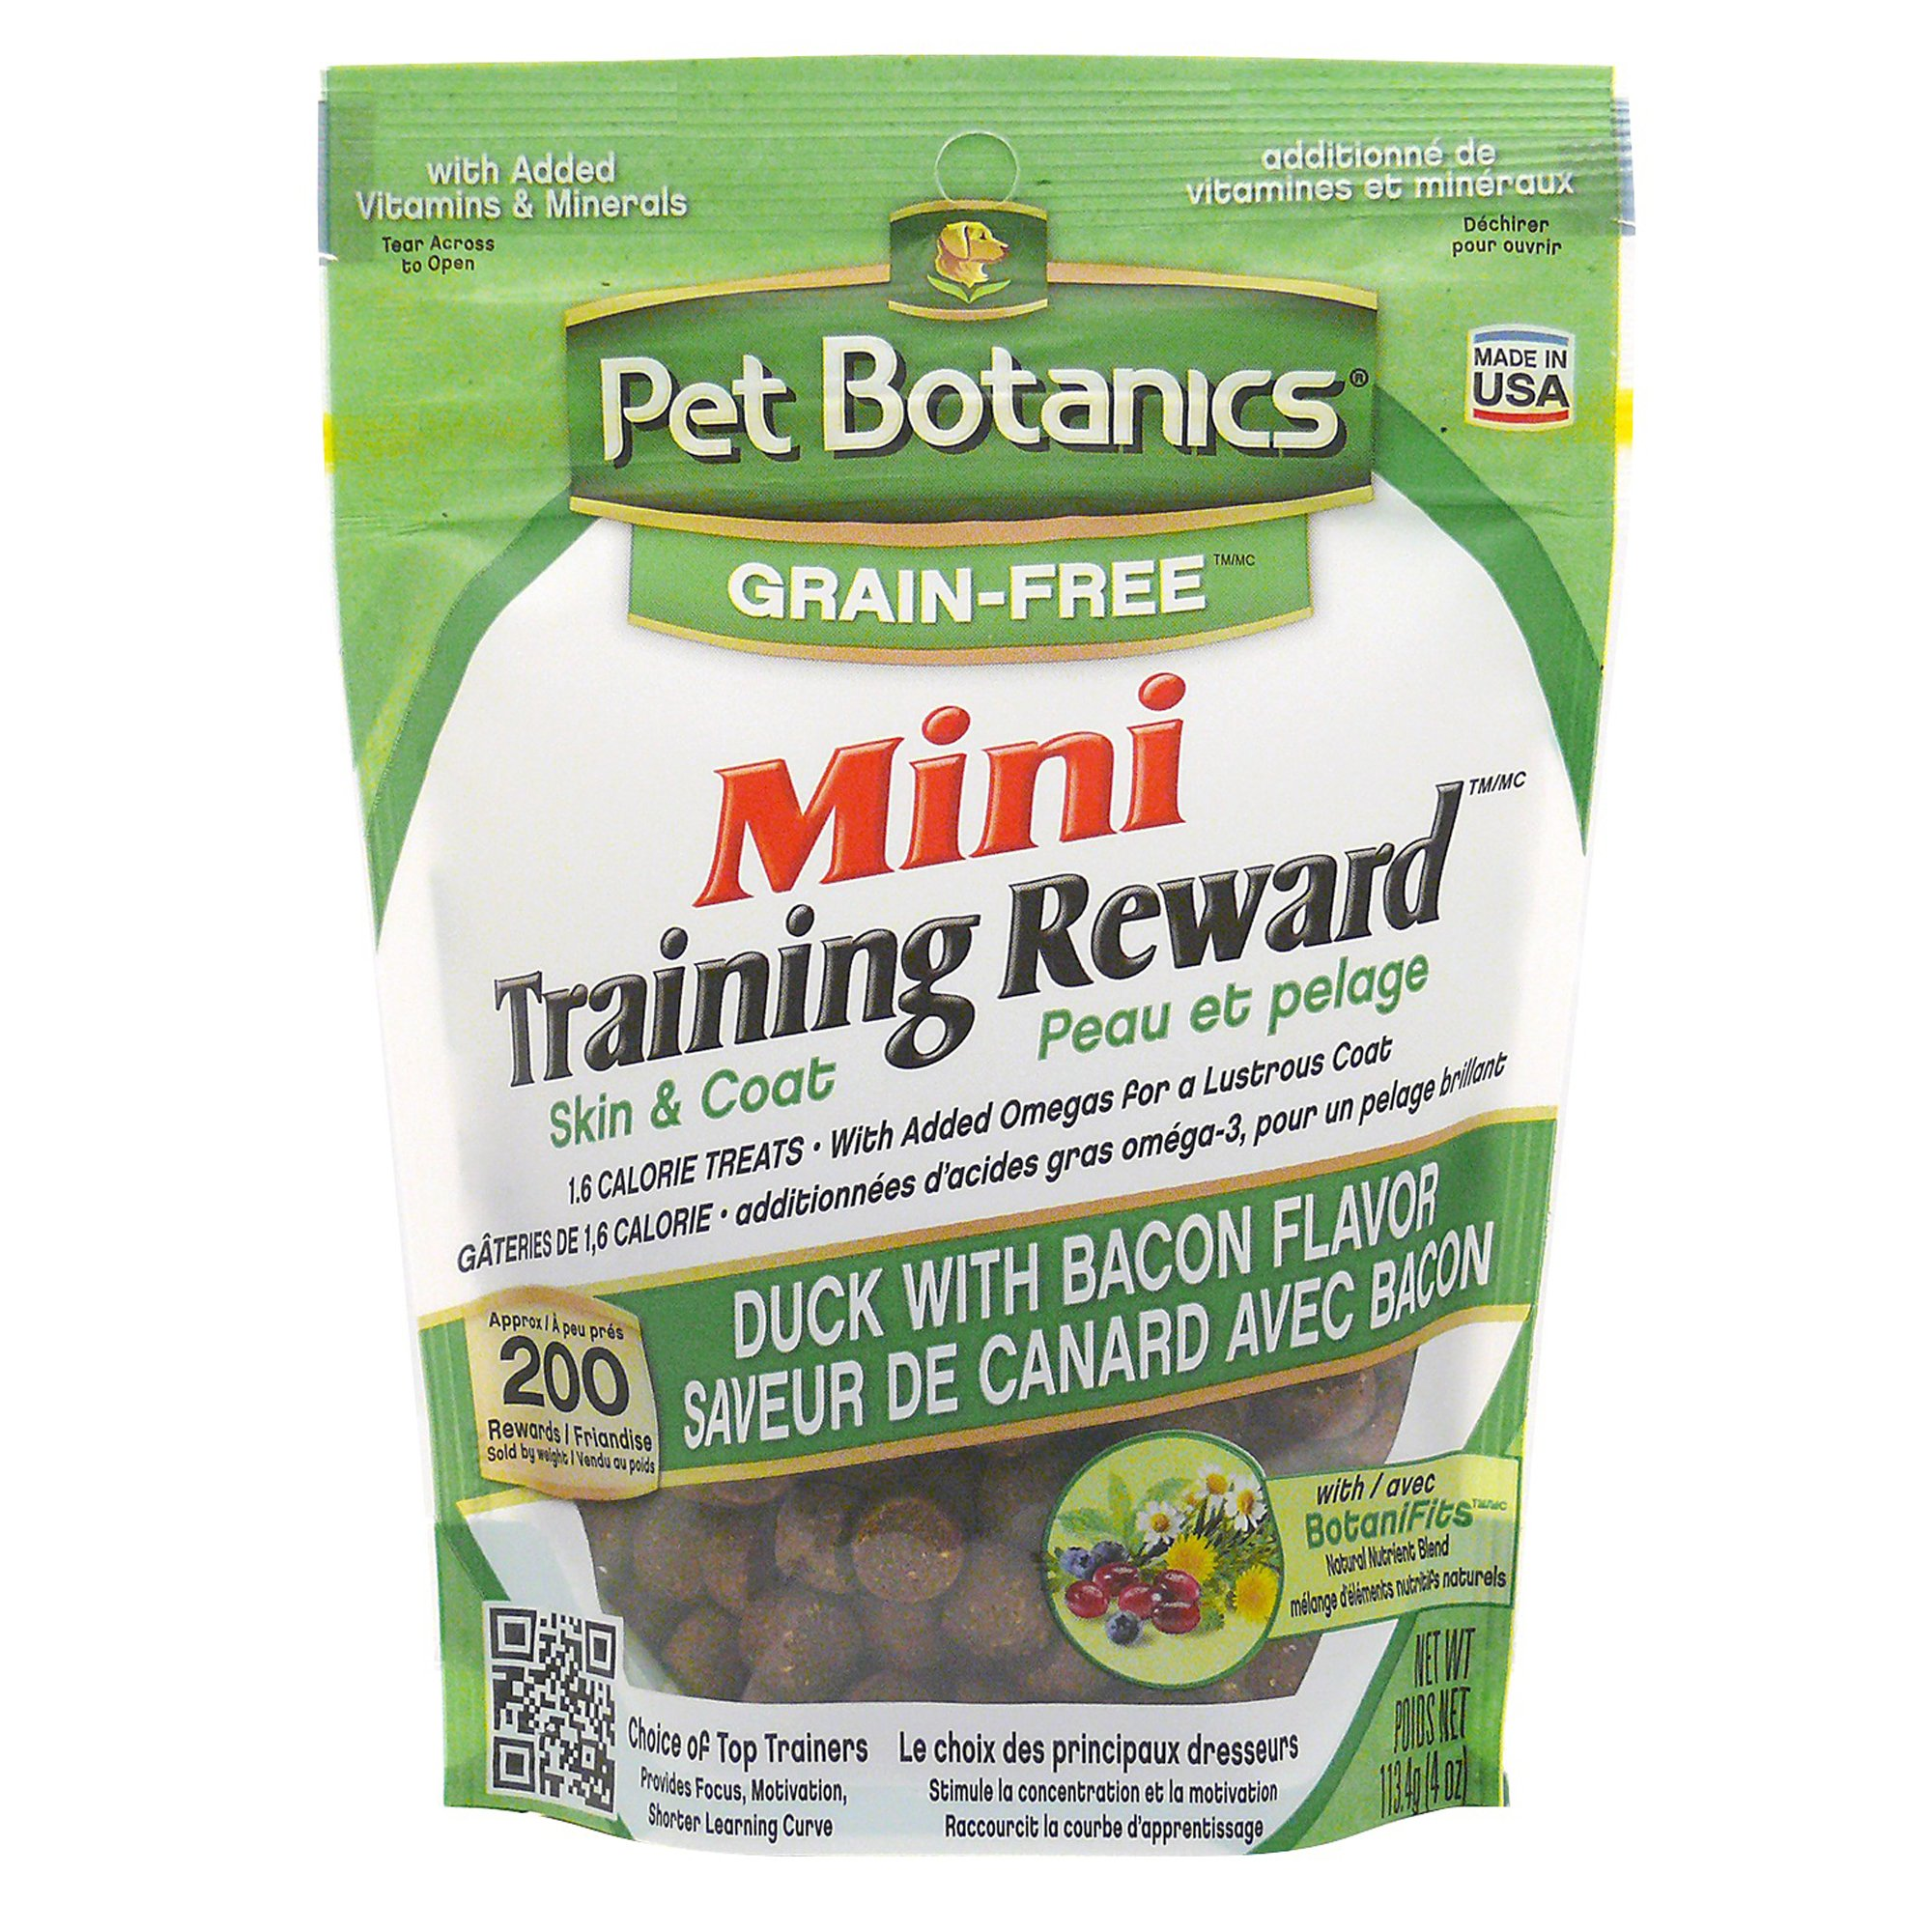 Image of Pet Botanics Grain Free Mini Training Reward Duck & Bacon Flavor Dog Treats, 4 oz. bag, 200 count